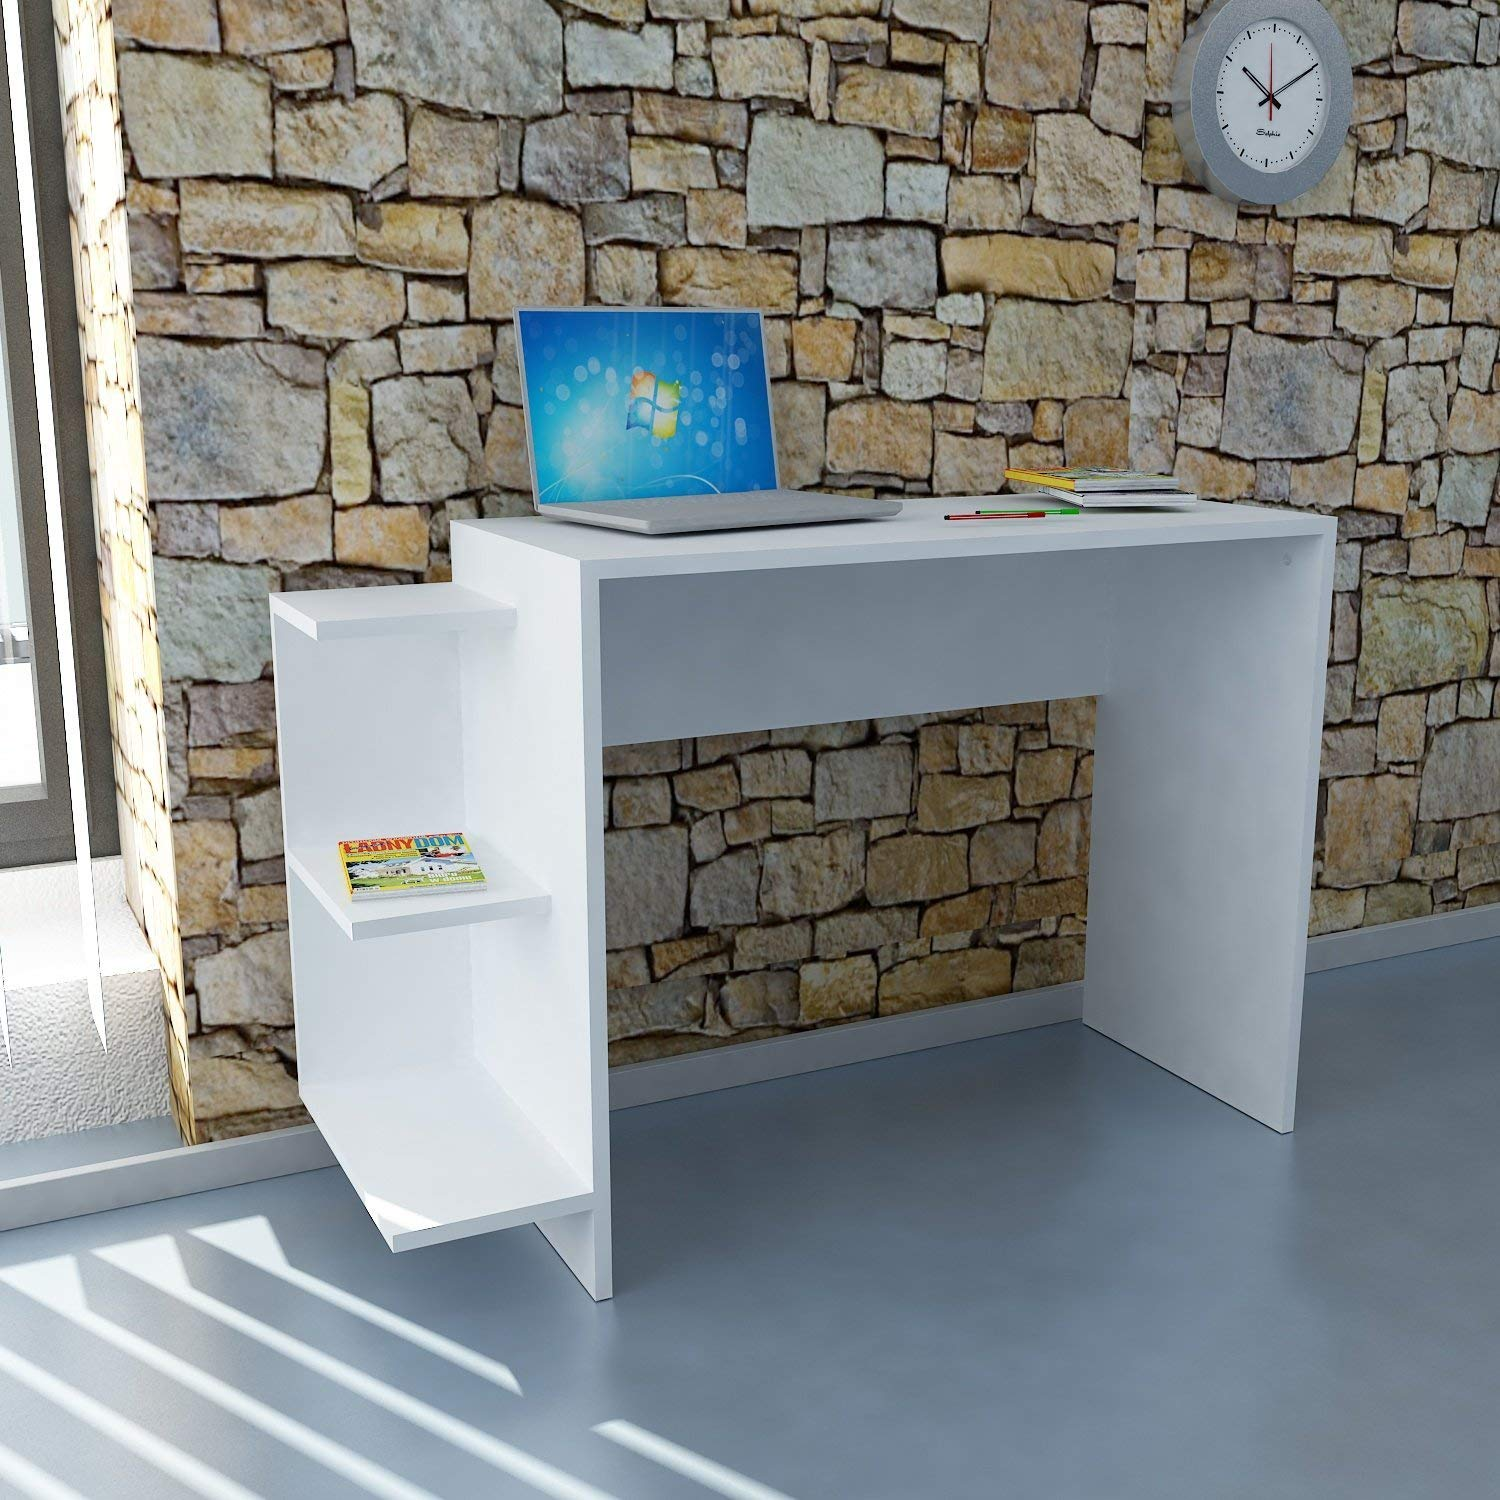 Writing Computer Desk Modern & Simple White One Color Functional Decorative Stylish Stable Study Desk Industrial Style Study & Laptop Table for Home, Office, Living Room, Study Room